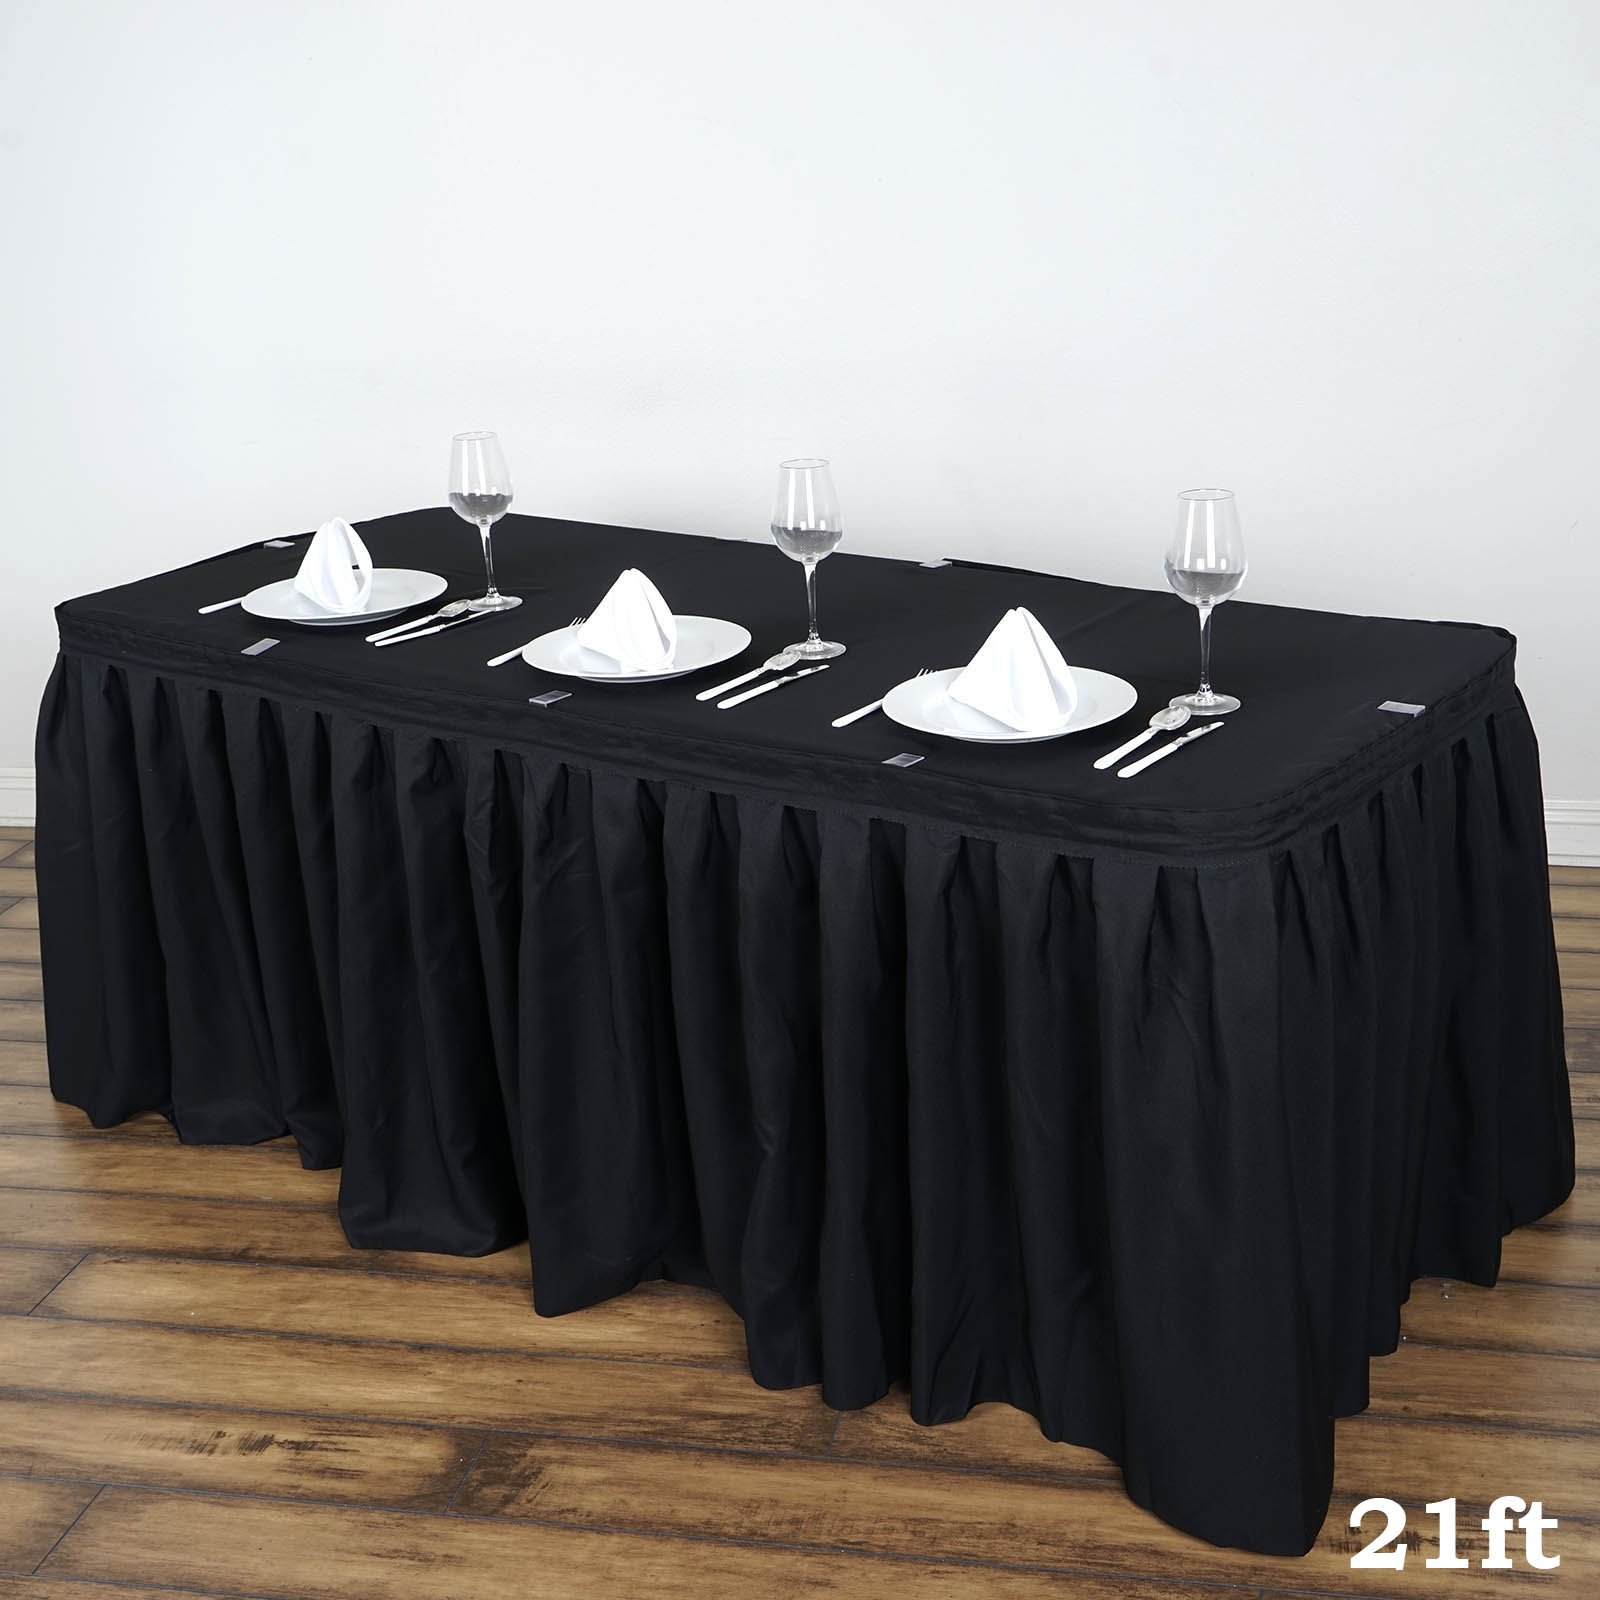 BalsaCircle 21 feet x 29-Inch Black Polyester Banquet Table Skirt Linens Wedding Party Events Decorations Kitchen Dining Catering